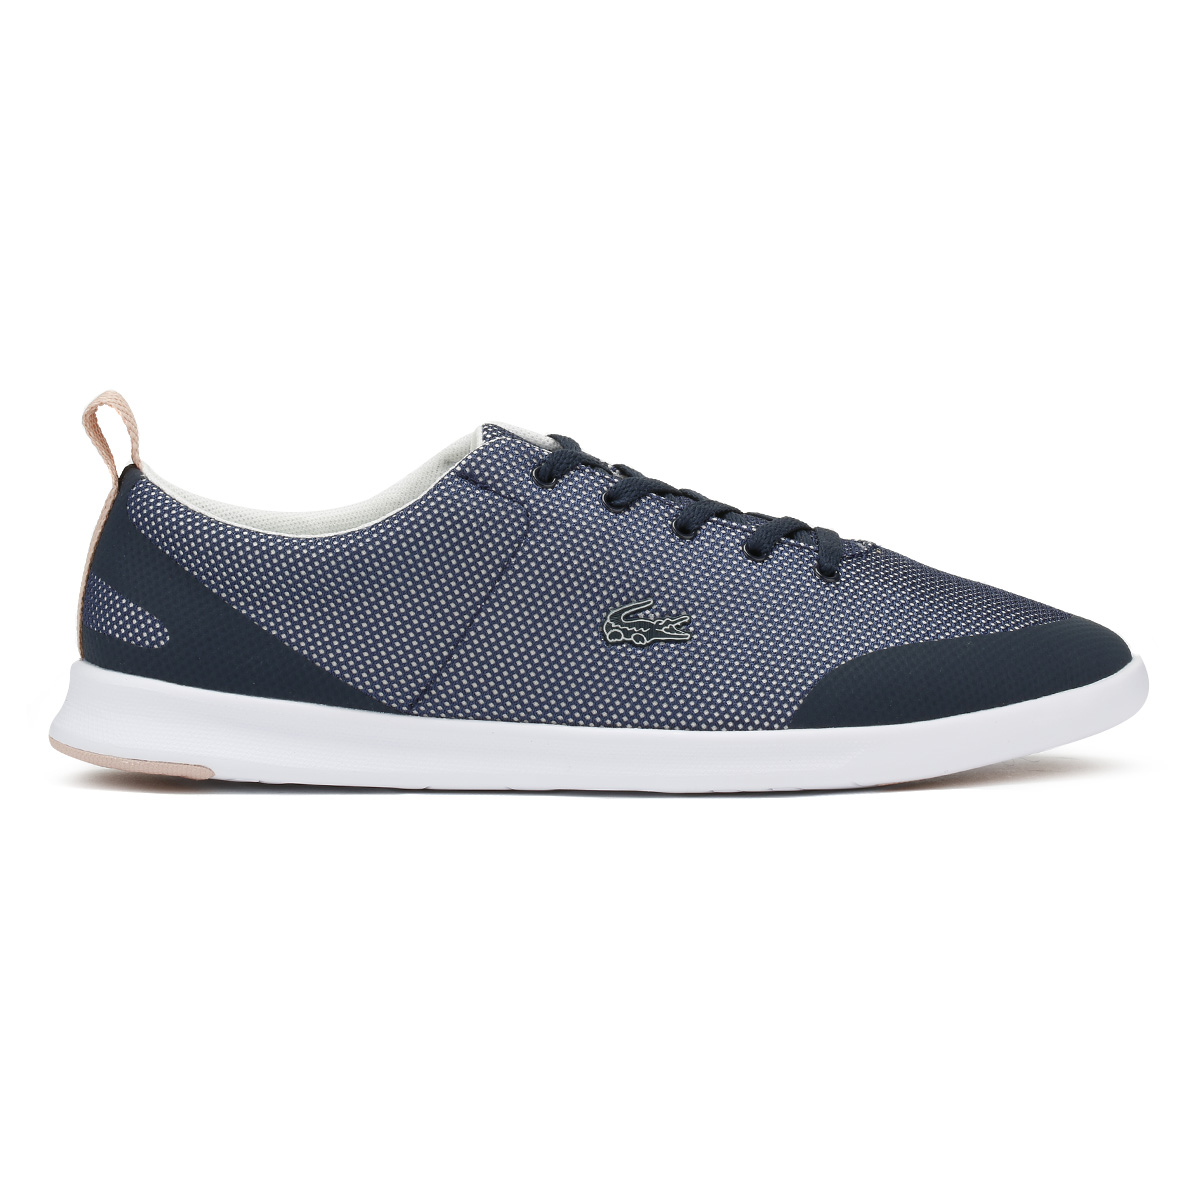 Lacoste Damenschuhe Trainers Trainers Trainers Navy Natural Avenir 218 1 Sport Casual Lace Up Schuhes ac67fa